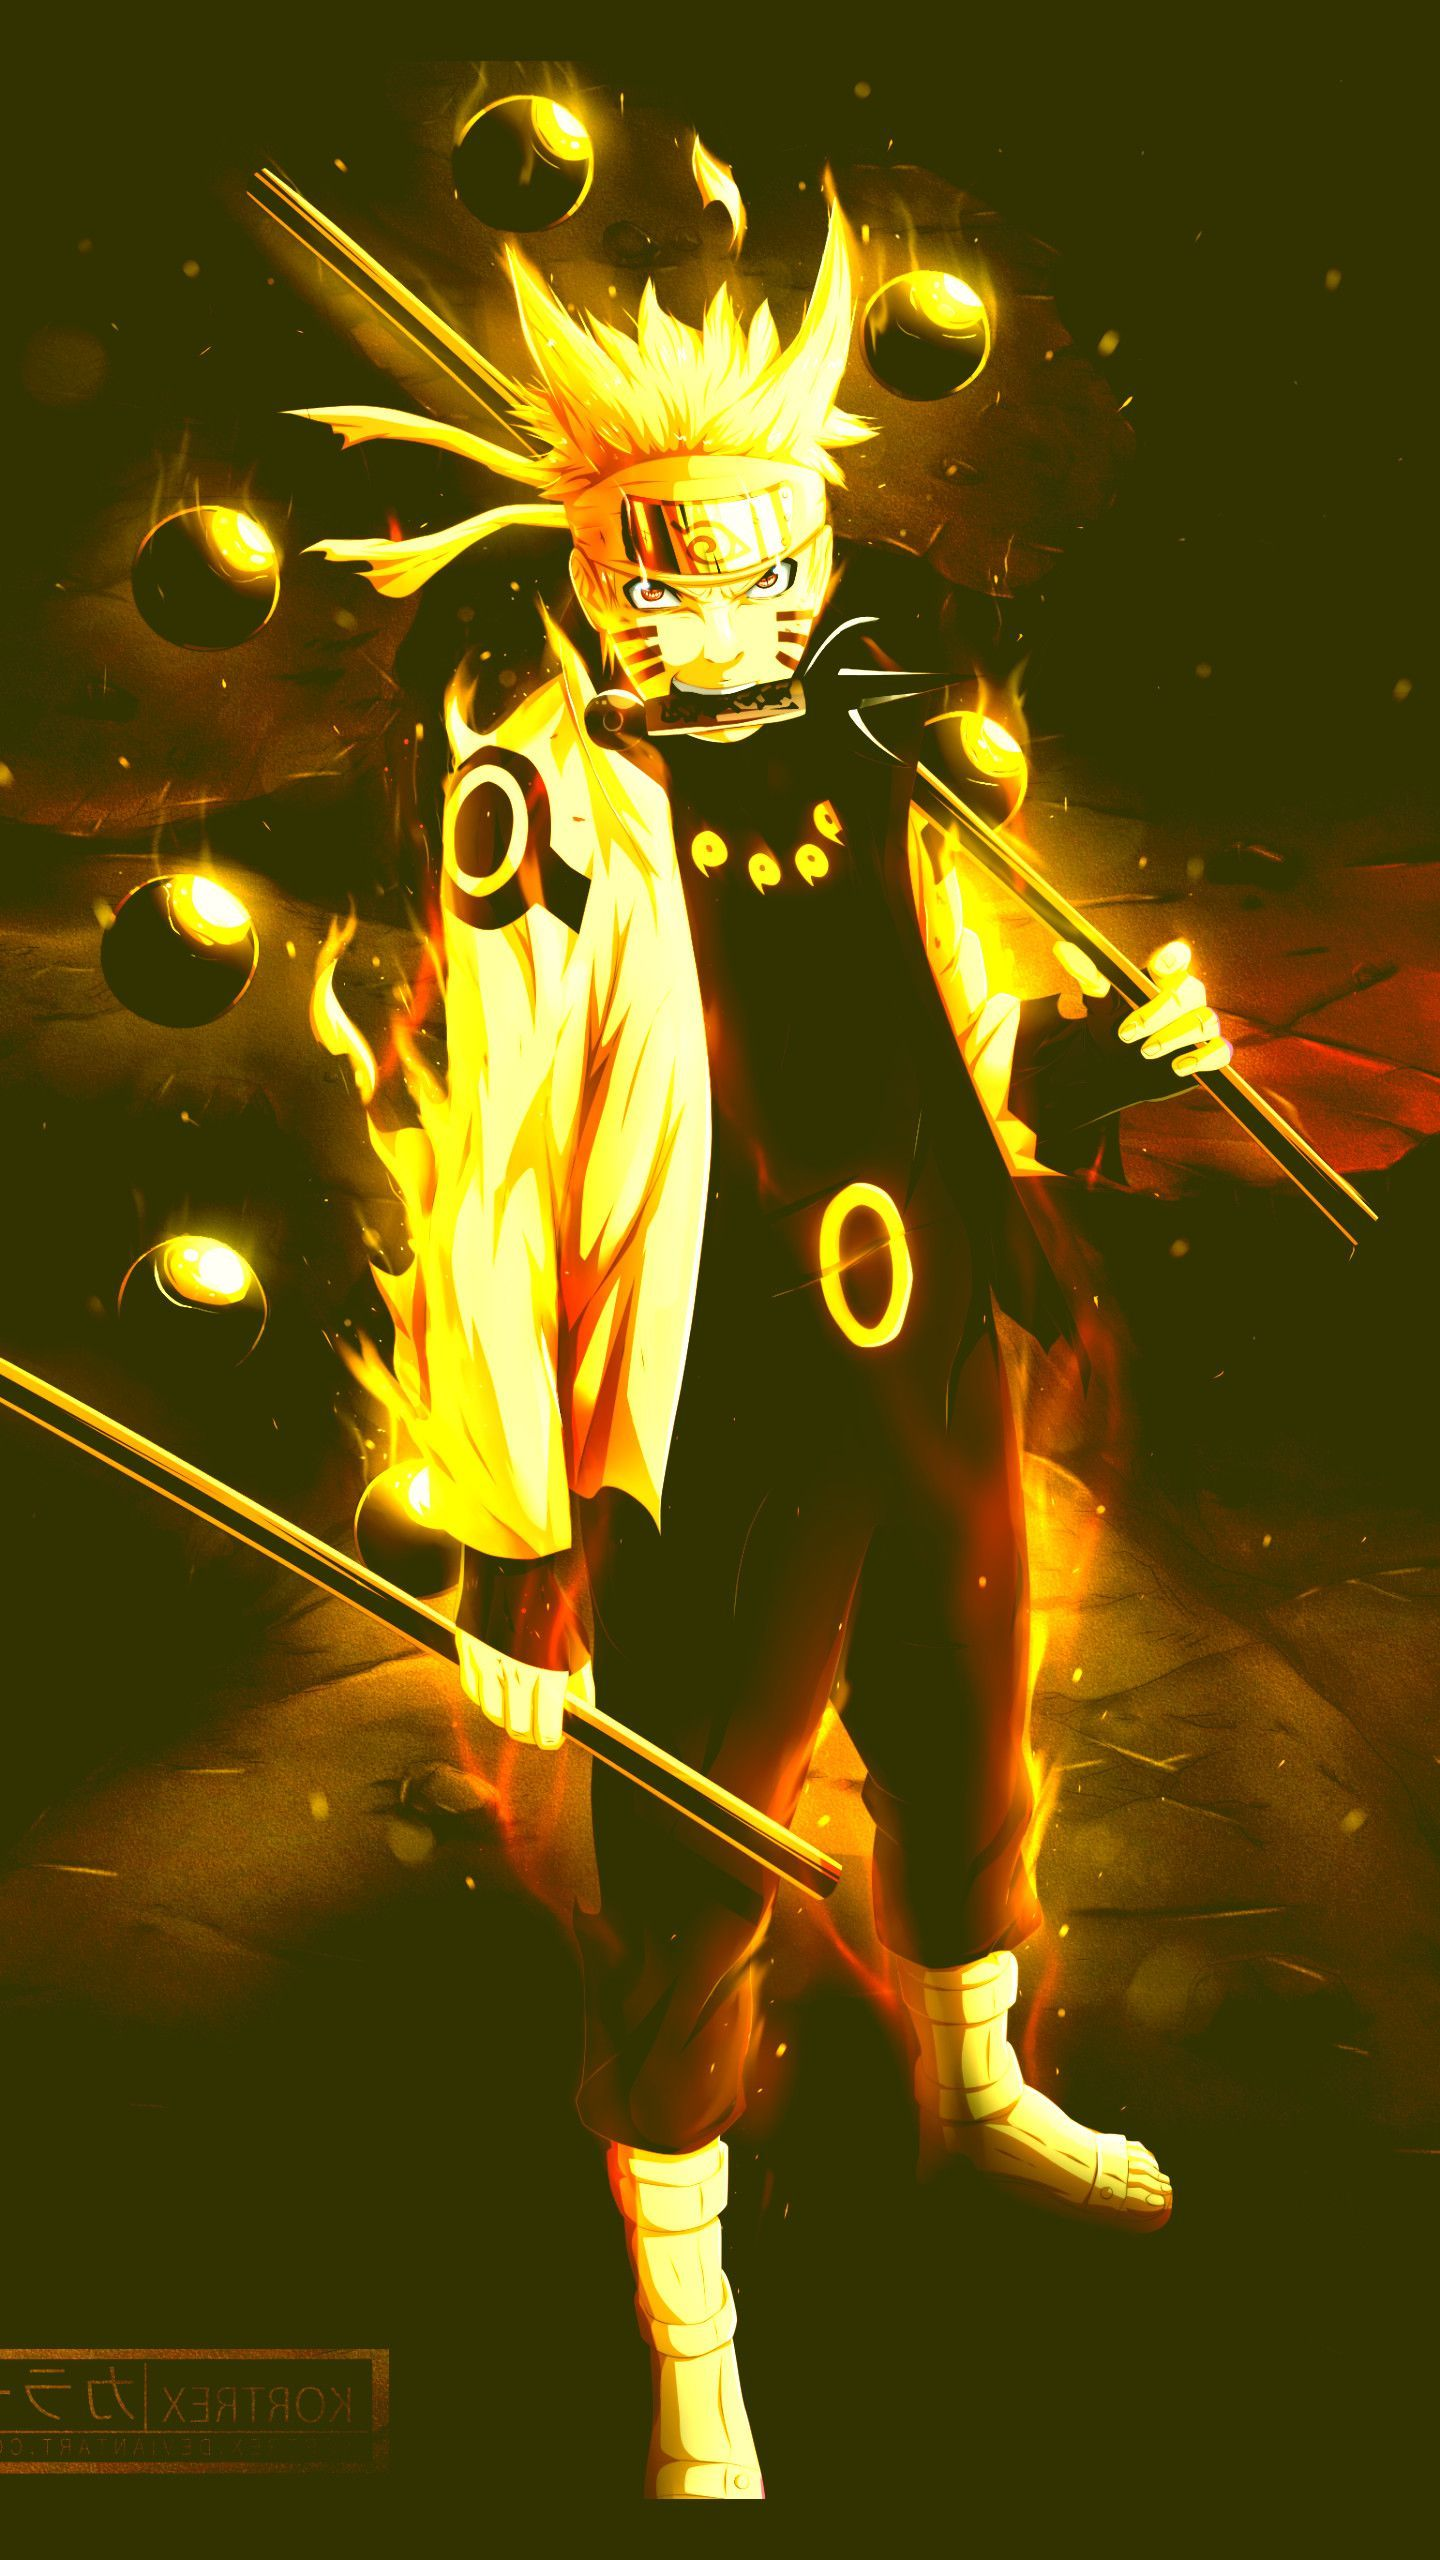 Naruto Shippuden Iphone Wallpapers Top Free Naruto Shippuden